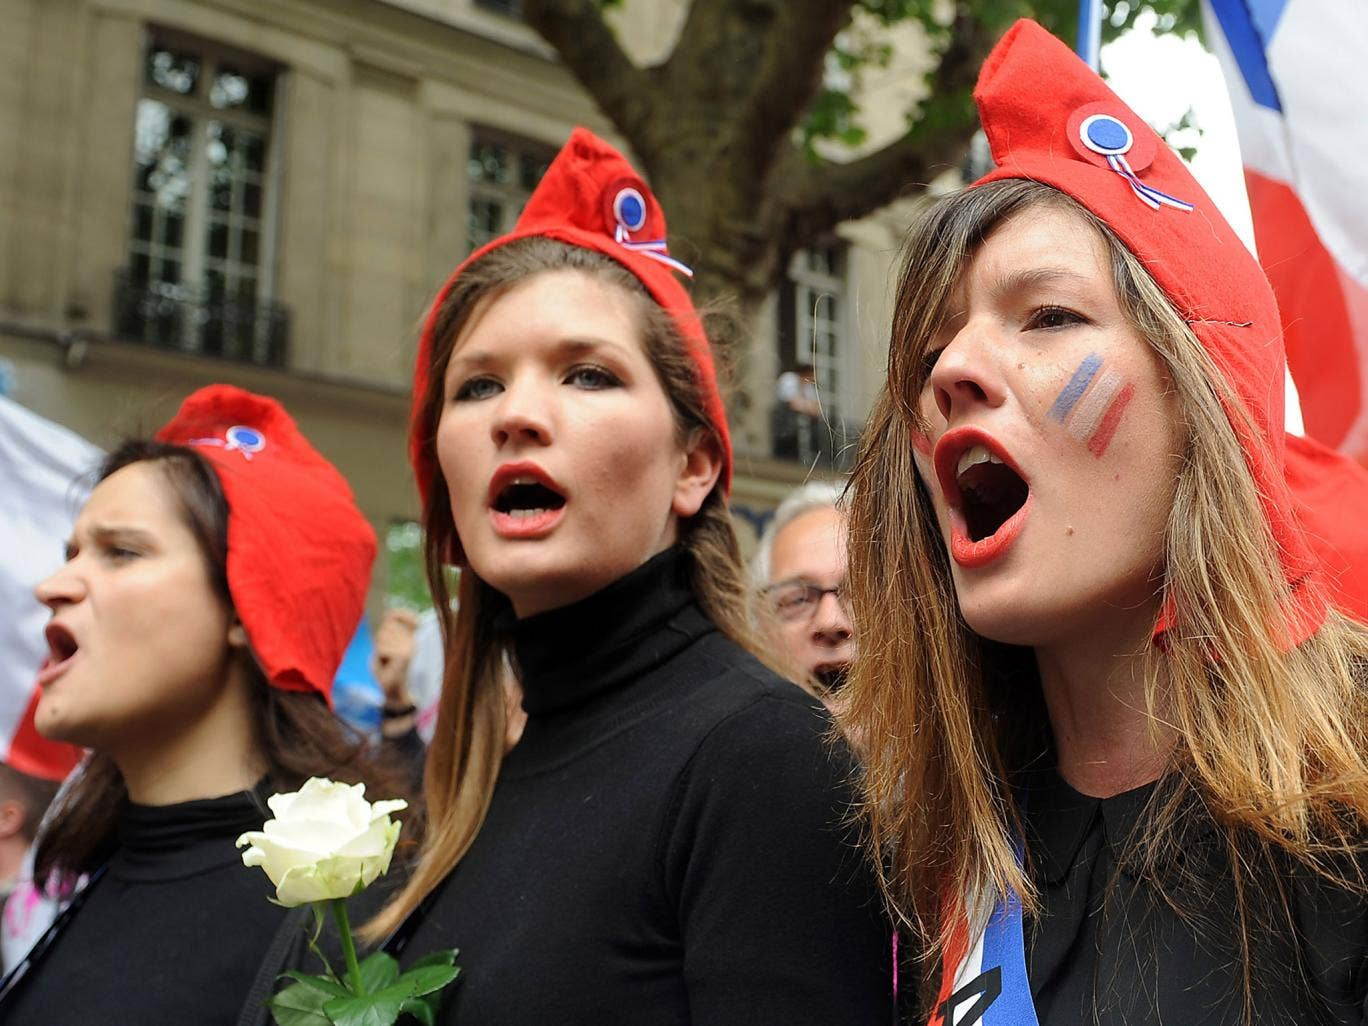 Activists against same-sex marriage took to the streets in Paris